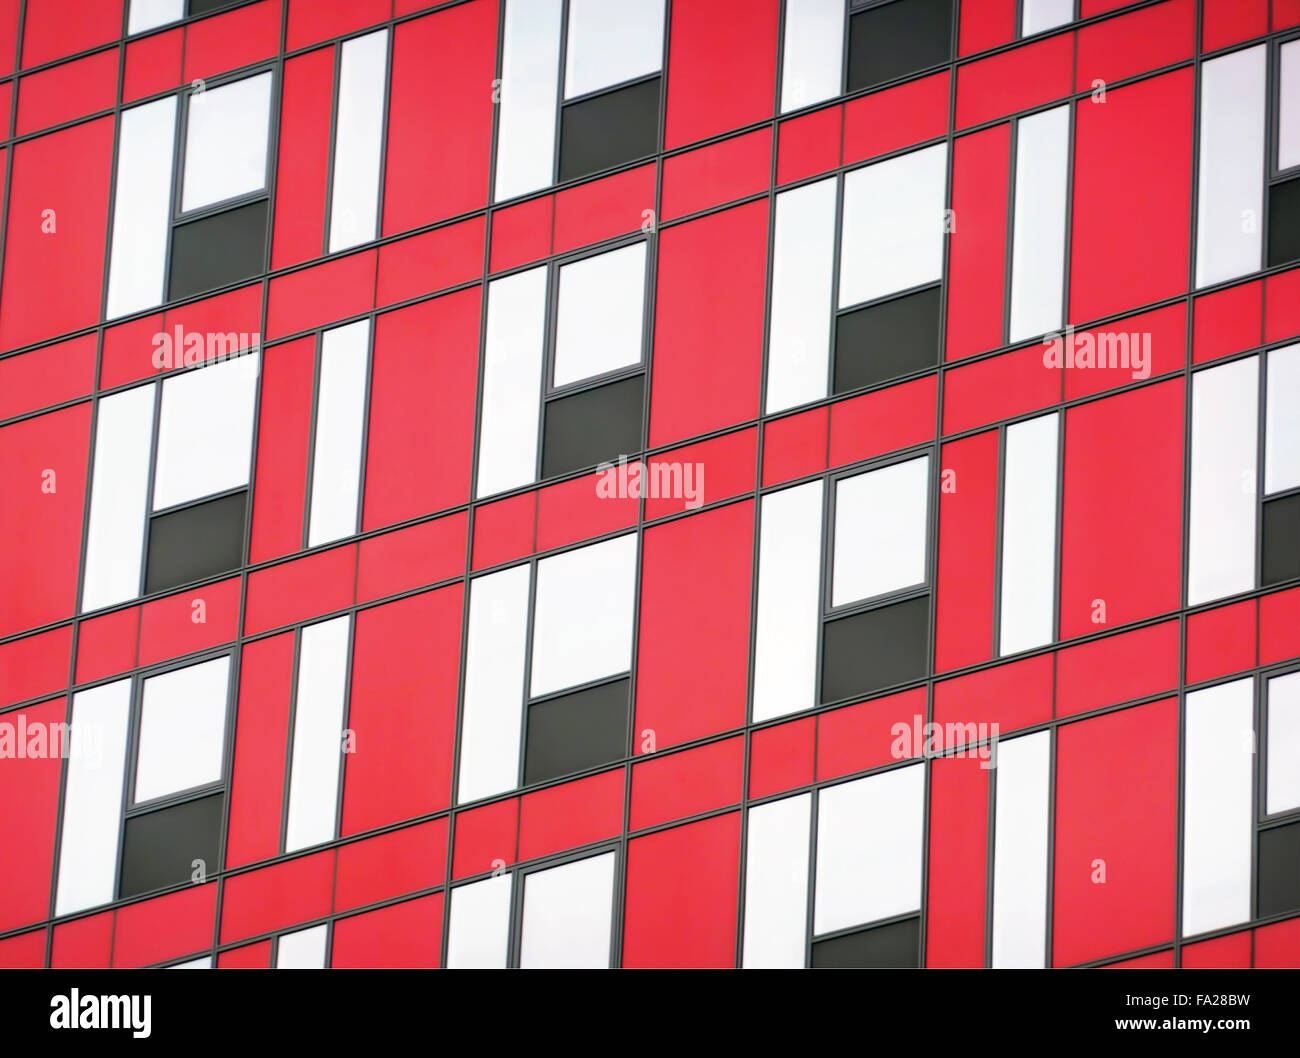 Modern facade with black and red glass panels - Stock Image